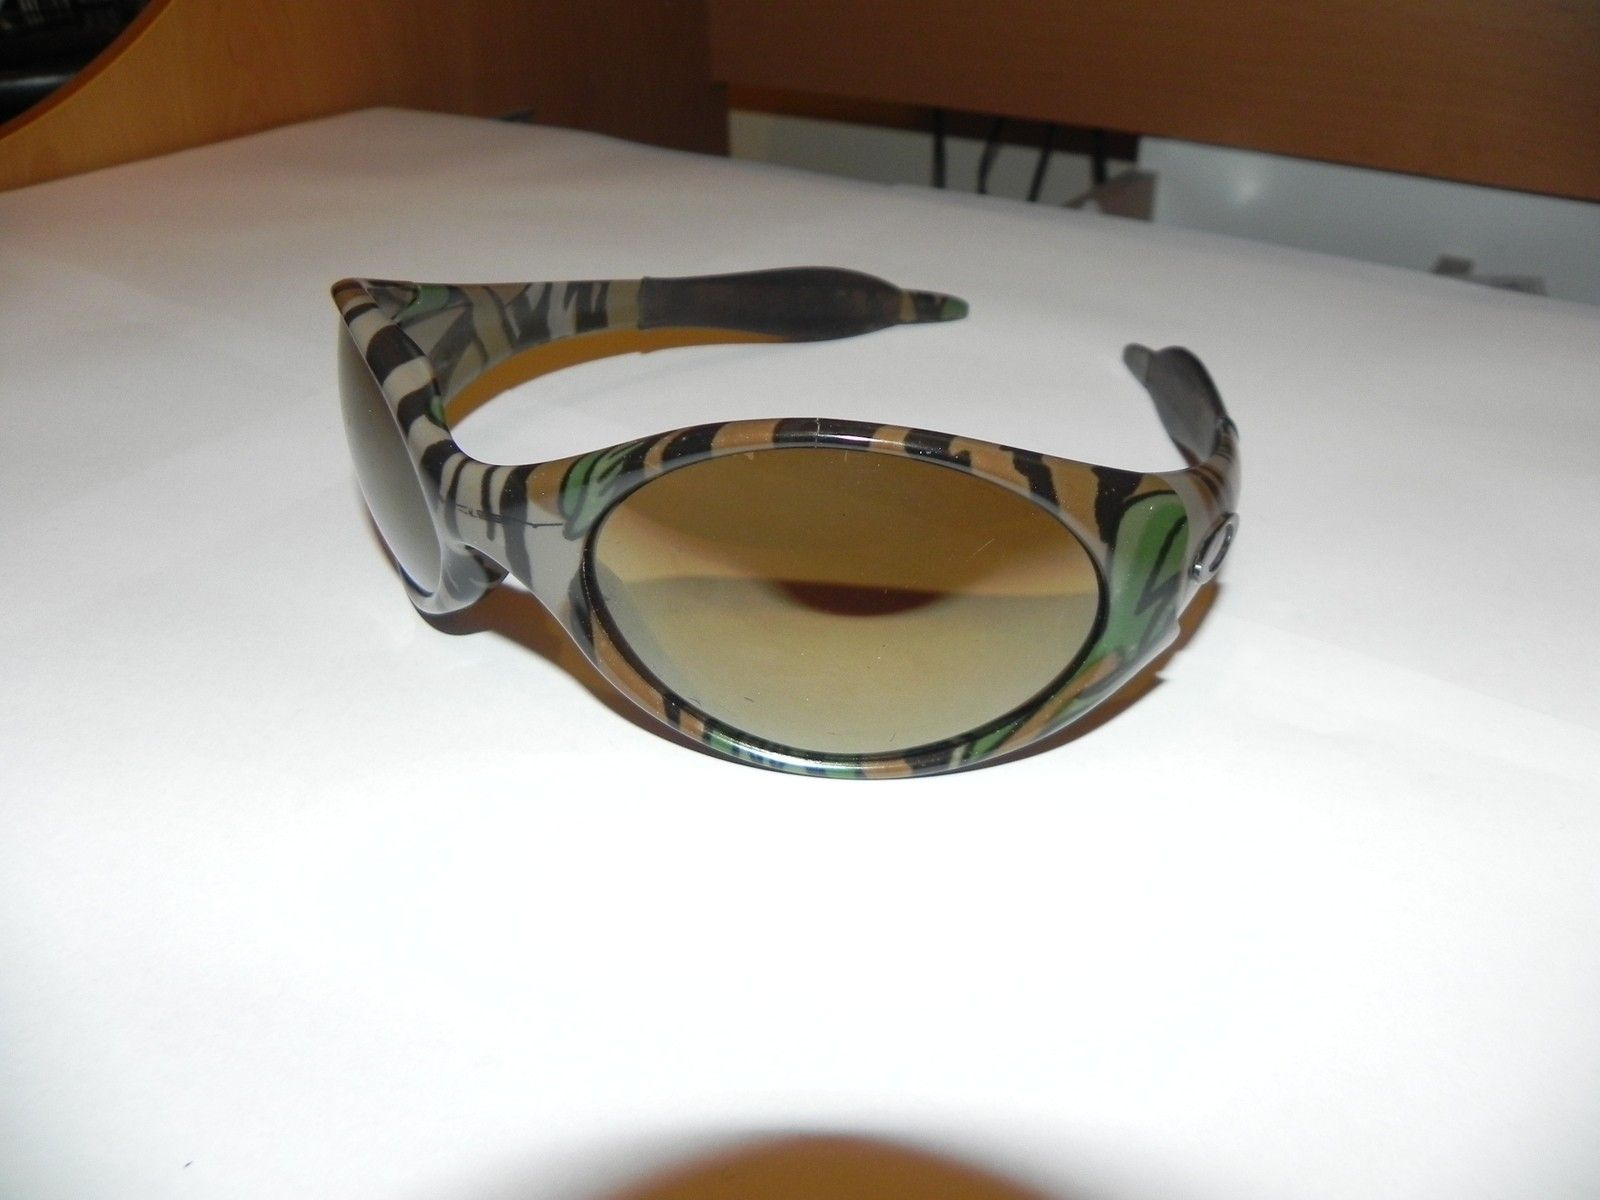 Echelon carbonfiber jawbone, Jungle camo trenchcoat, Frost Oil rig - DSCN3930.JPG